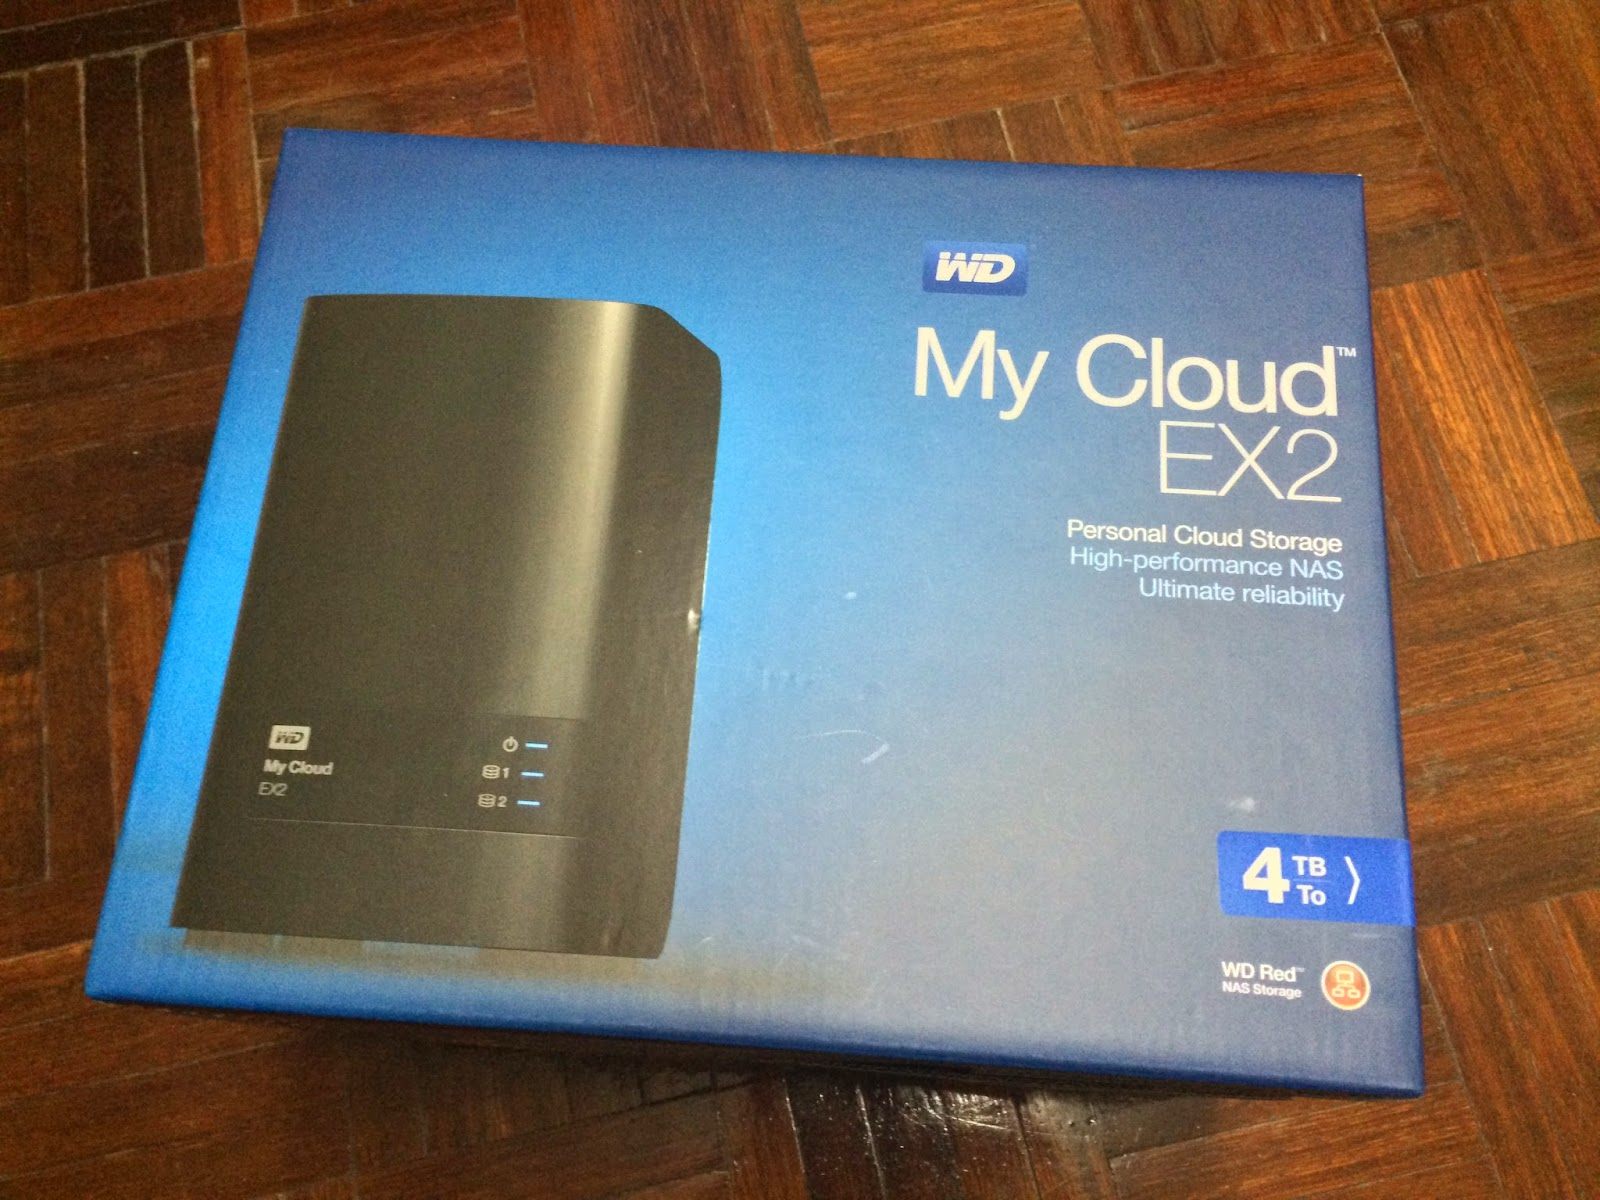 Unboxing & Review: Western Digital My Cloud EX2